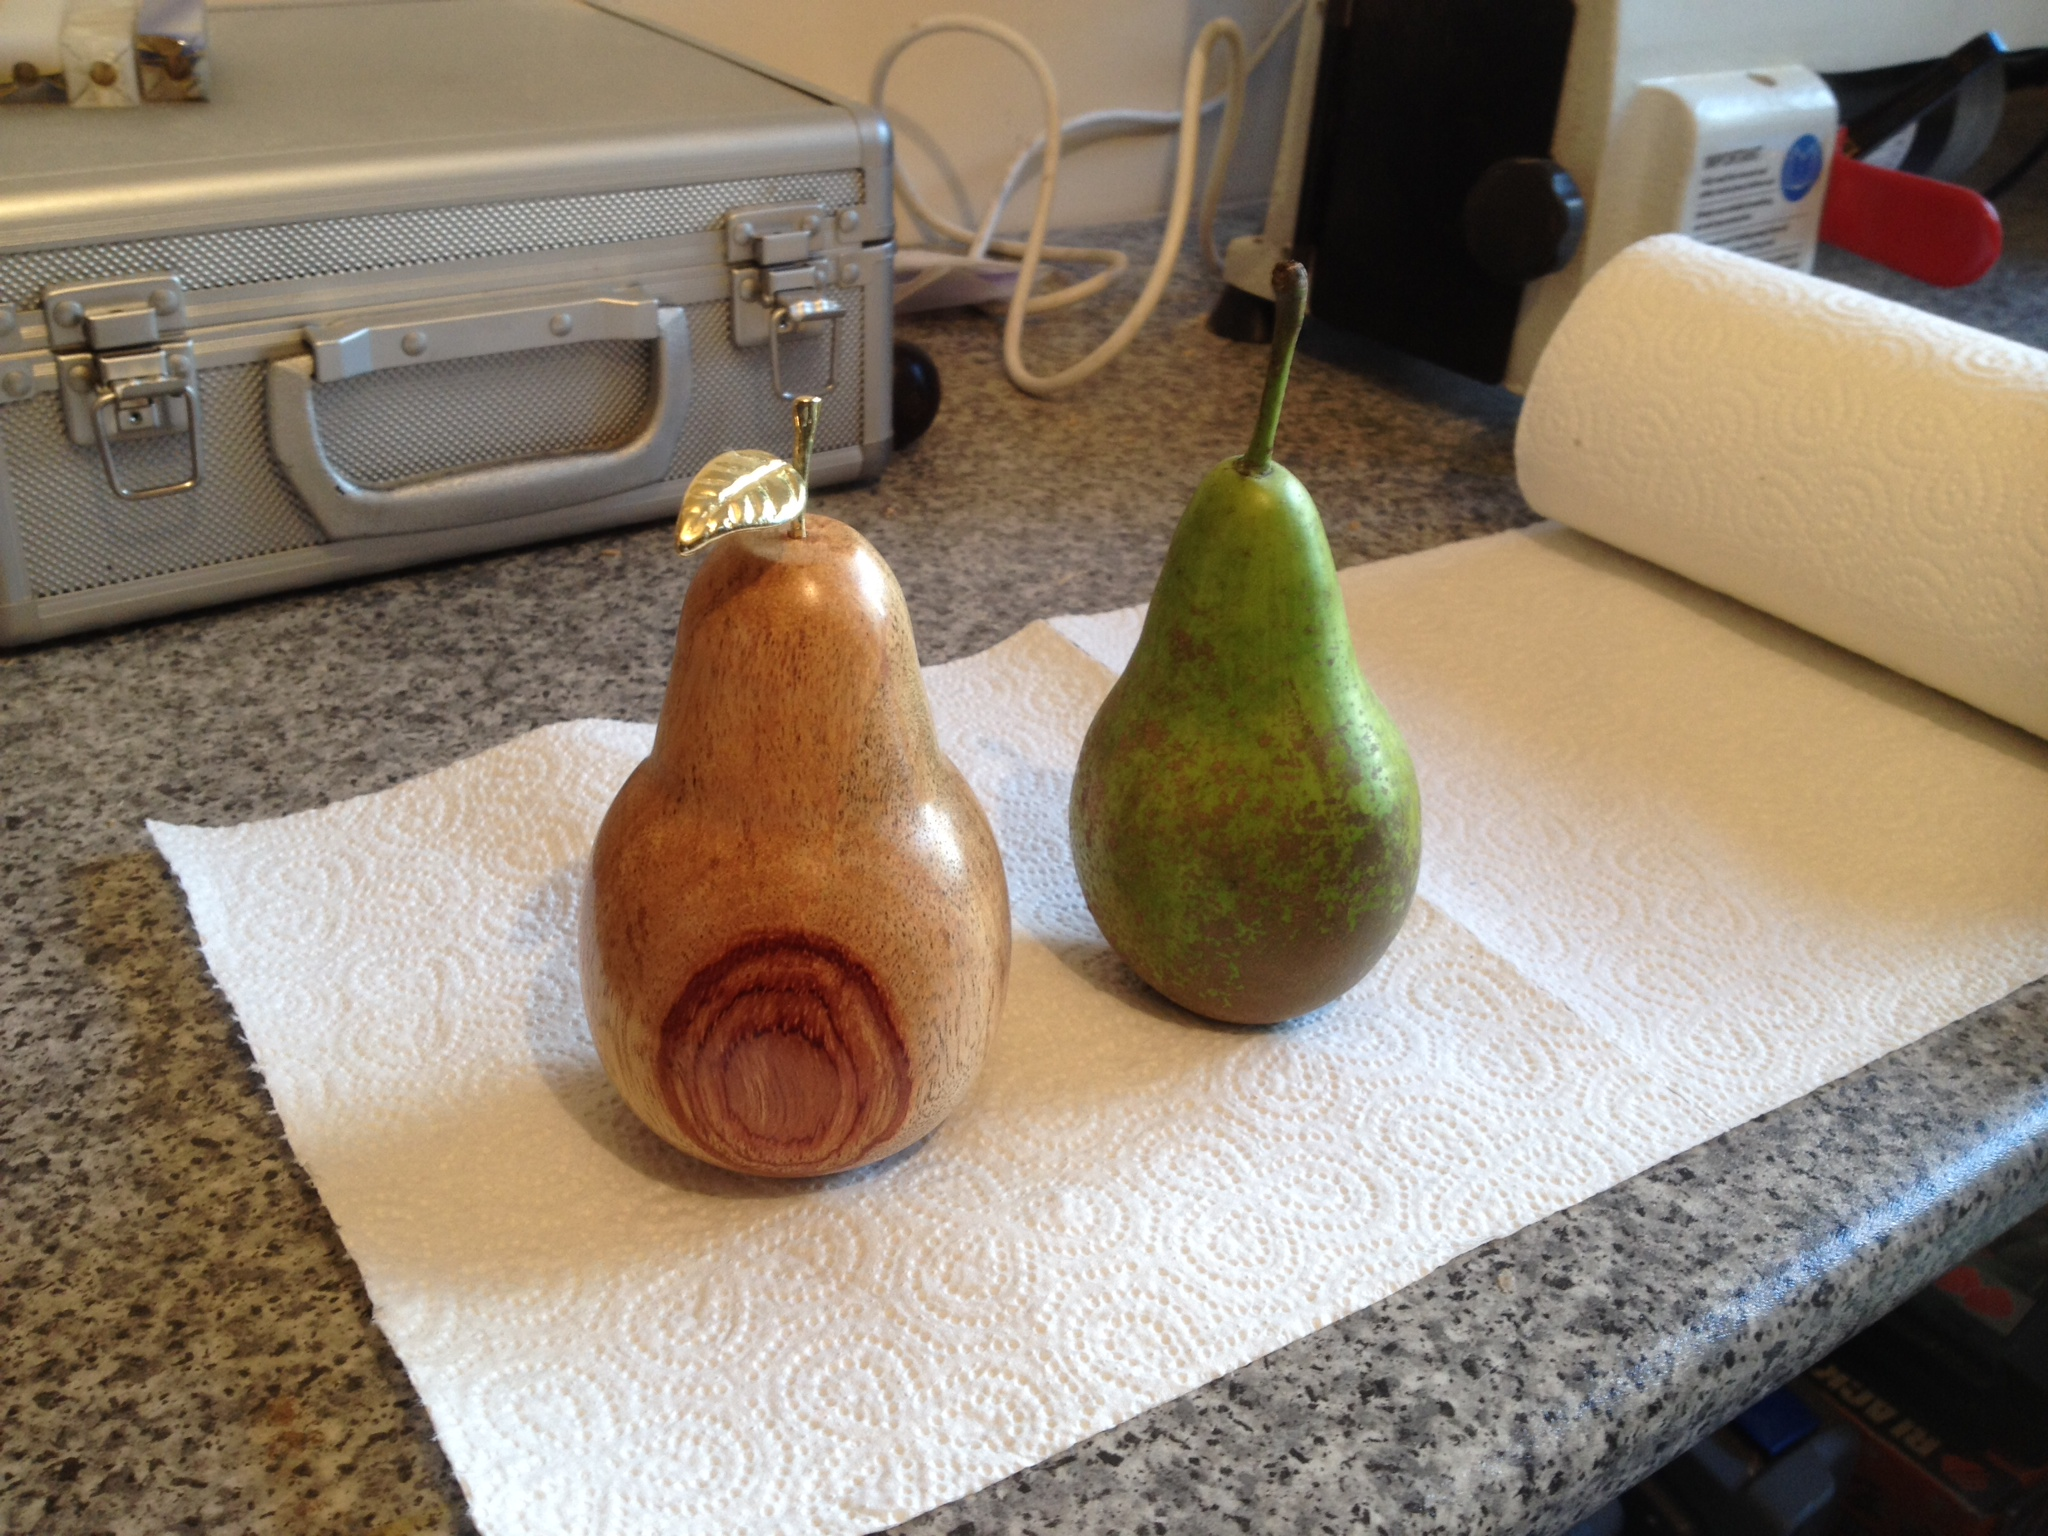 Woodturning projects for beginners turning a pear (1) - Steve Freeman ...